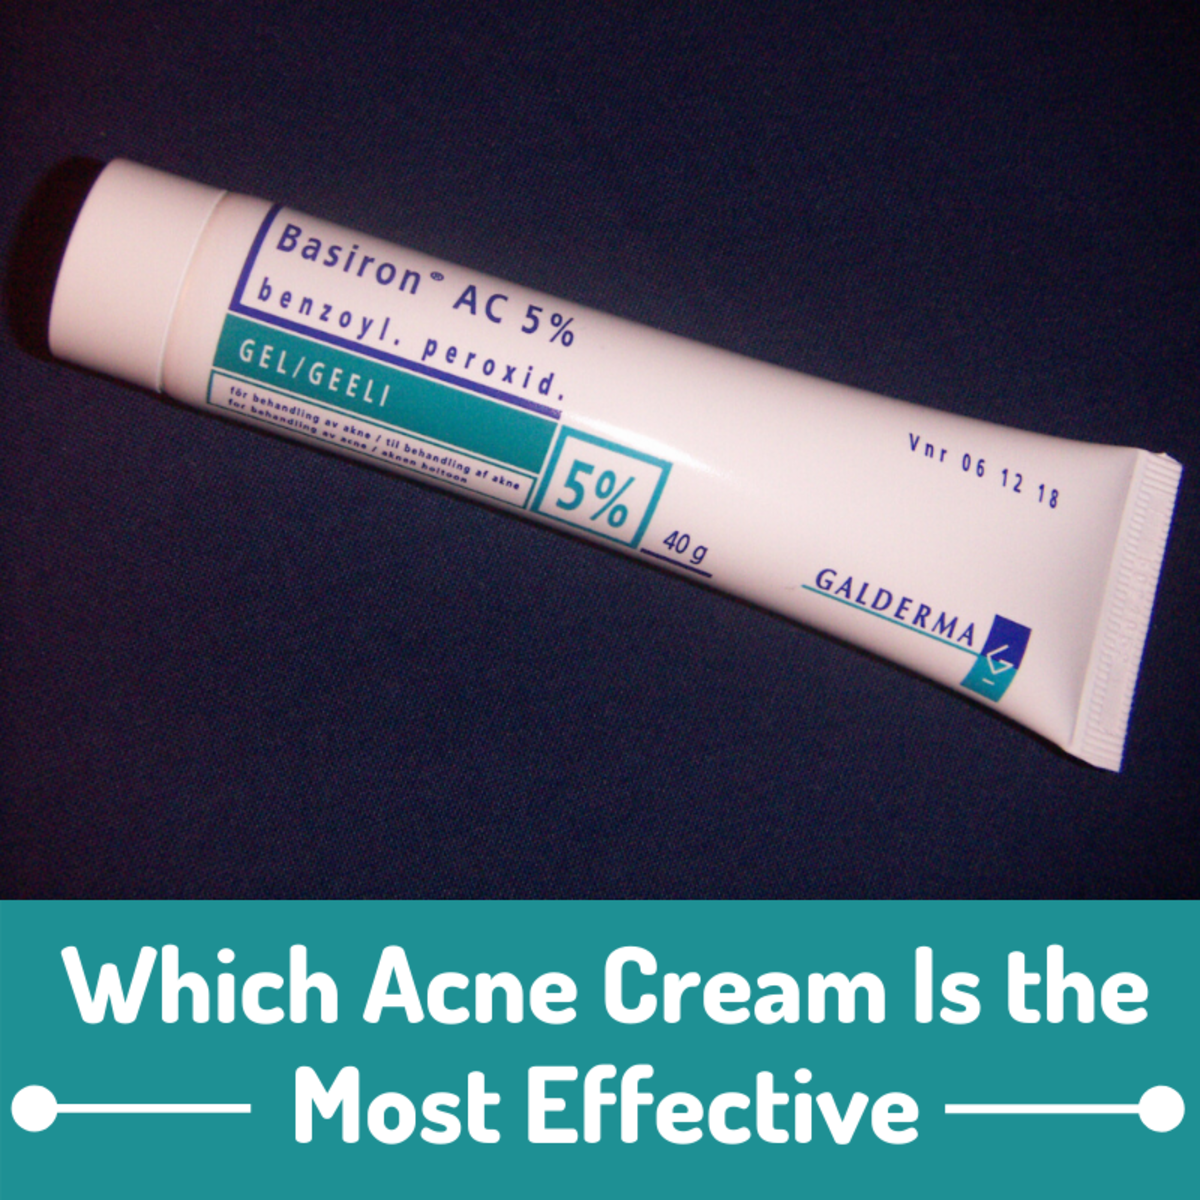 What's the Best Pimple Cream? 2 Effective Ingredients That Zap Zits